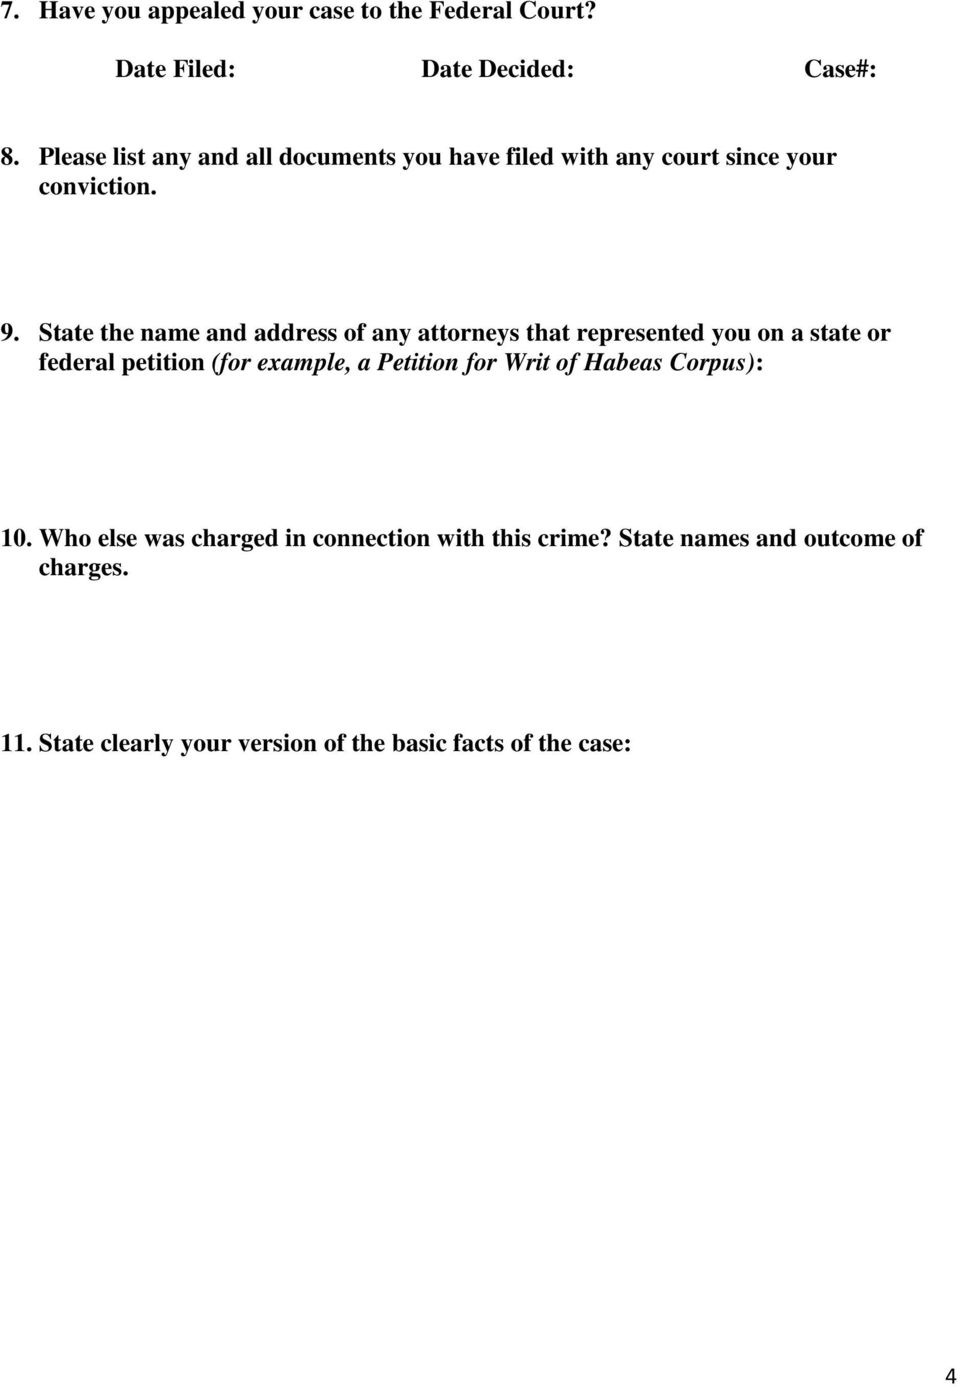 State the name and address of any attorneys that represented you on a state or federal petition (for example, a Petition